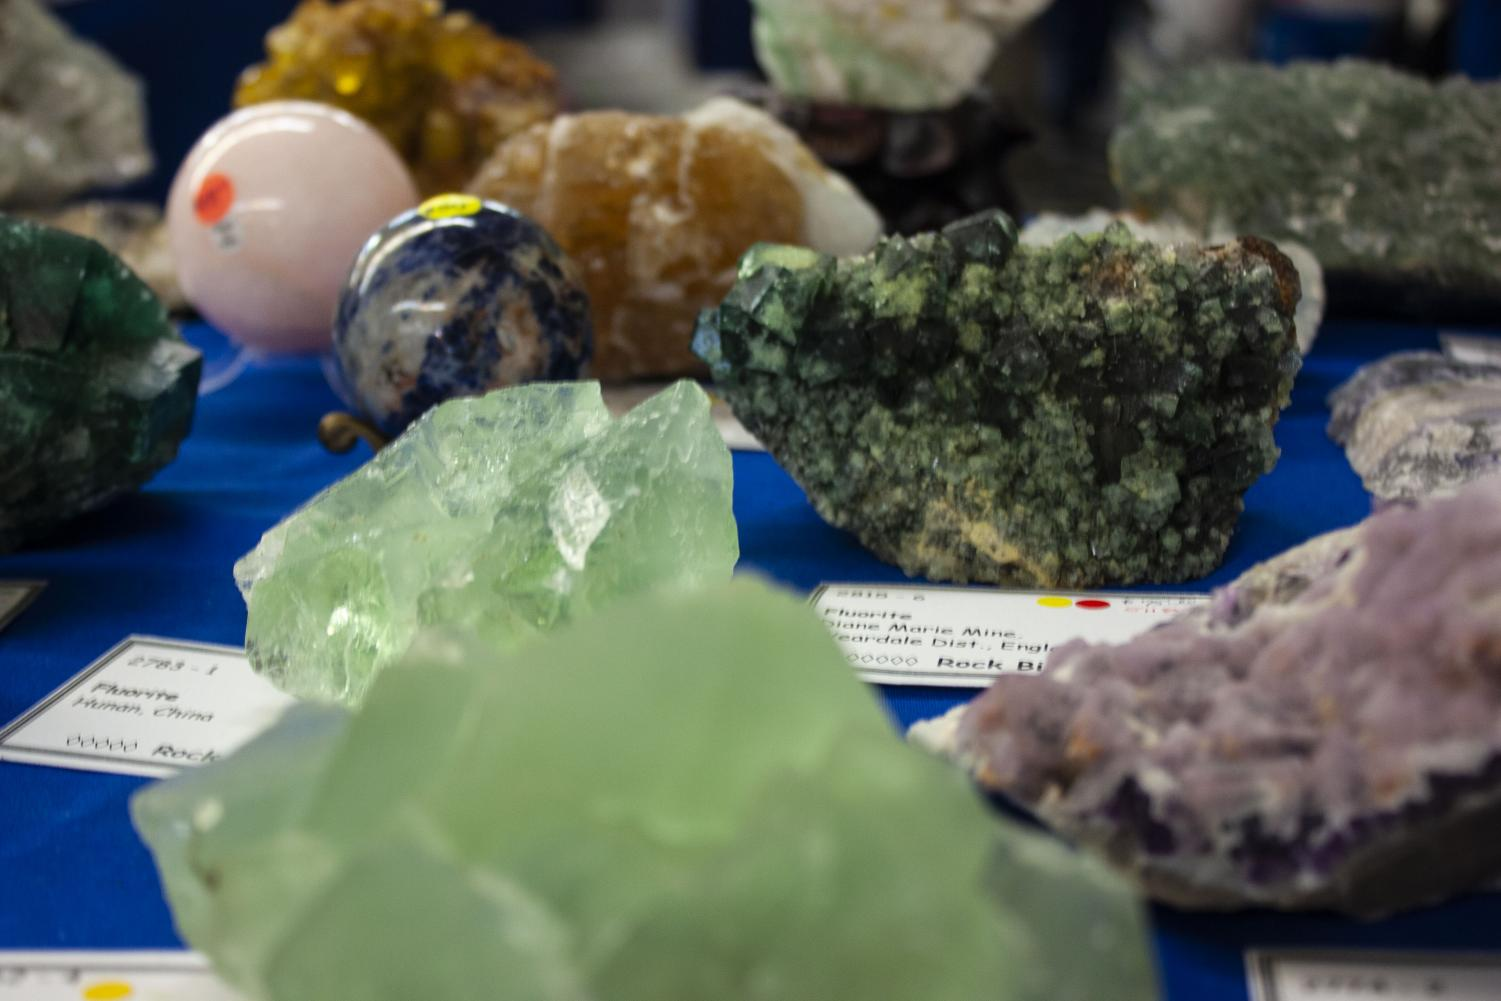 A+table+of+fluorite+and+quartz+pieces+were+left+on+display.+